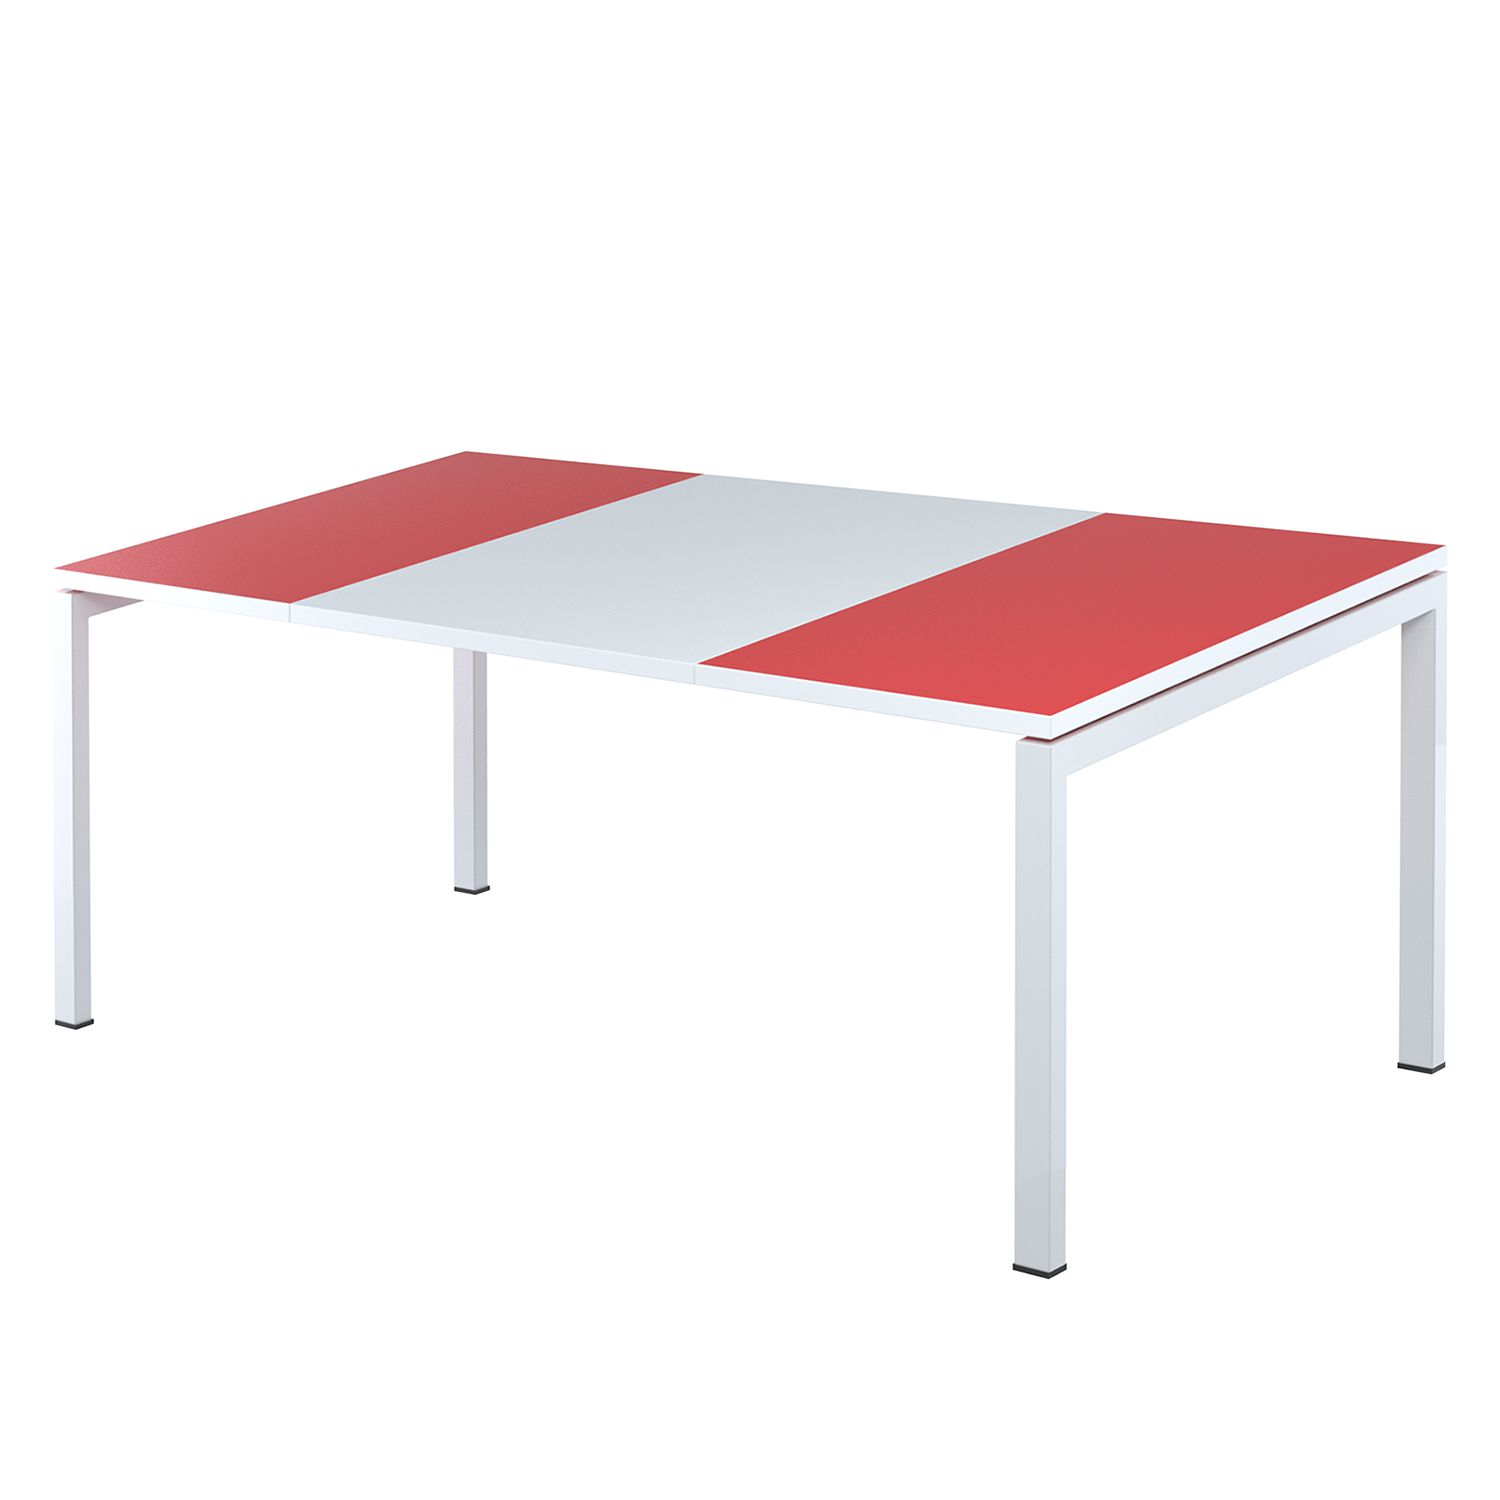 Bureau easyDesk - Wit/rood - 160x80cm, easy Office und Paperflow